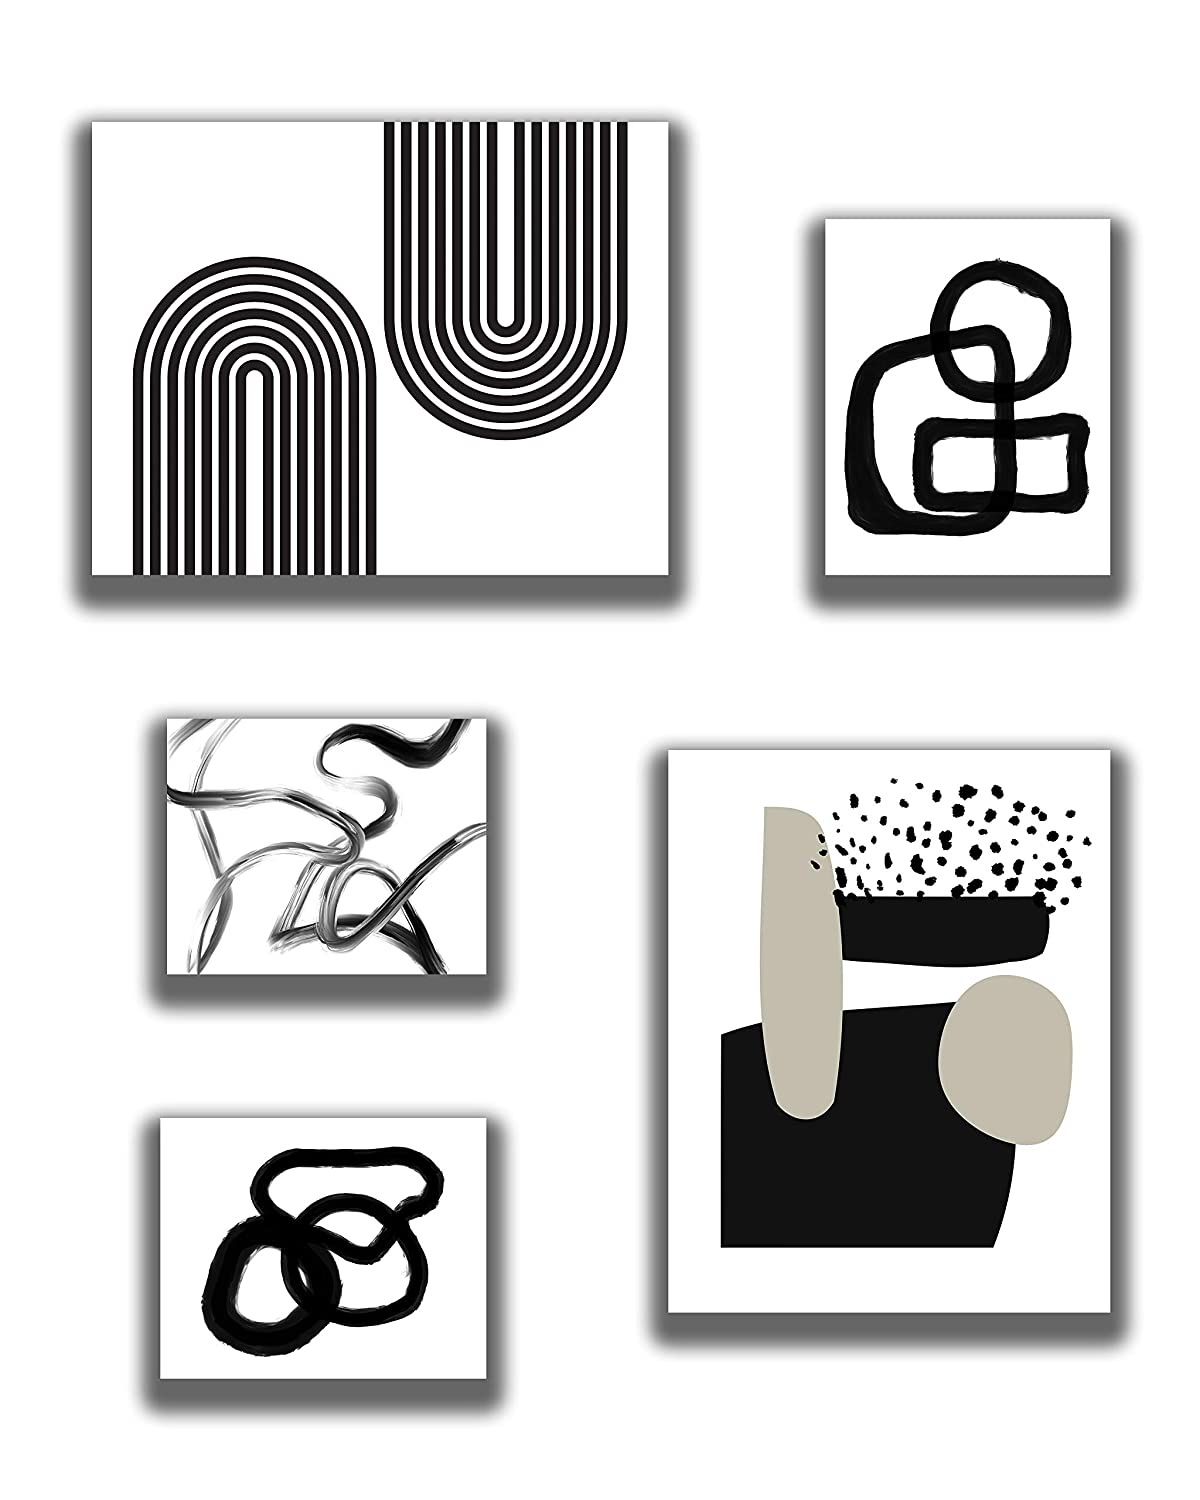 Modern Abstract Gallery Wall Omaha Mall Quantity limited Decor - 2 -8x1 of -11x14